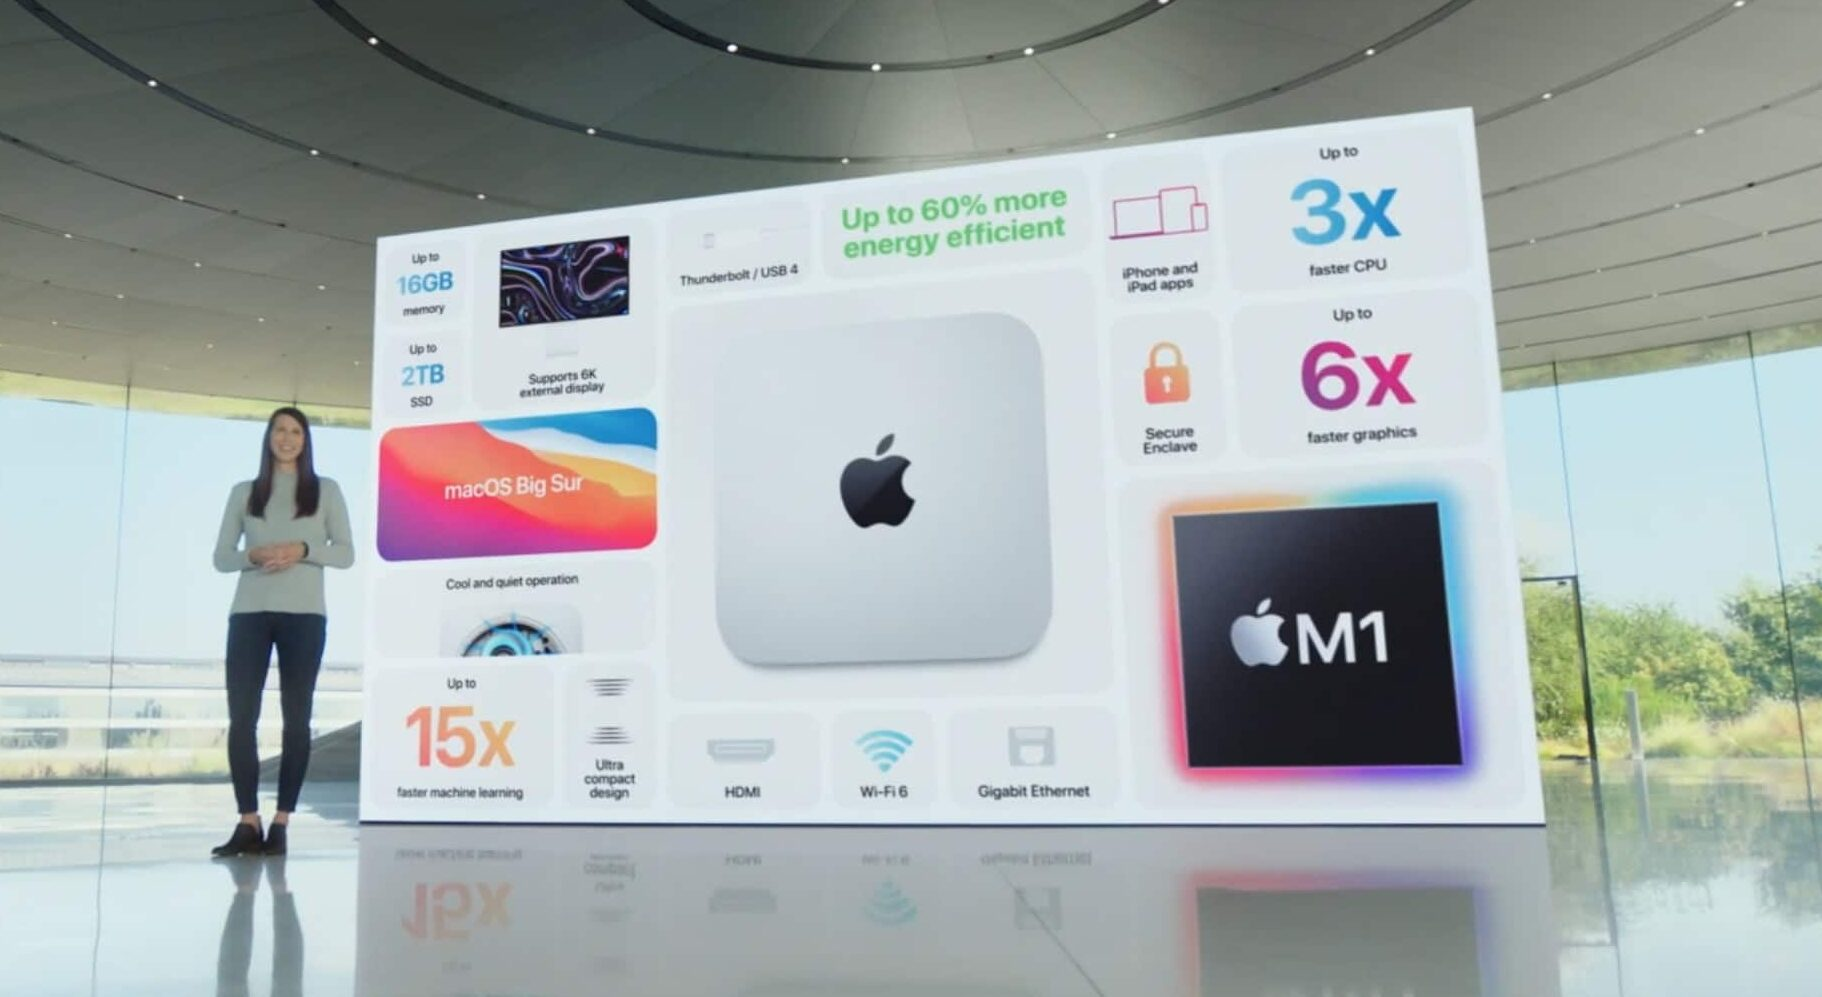 The Mac mini promises loads of features at a budget price.